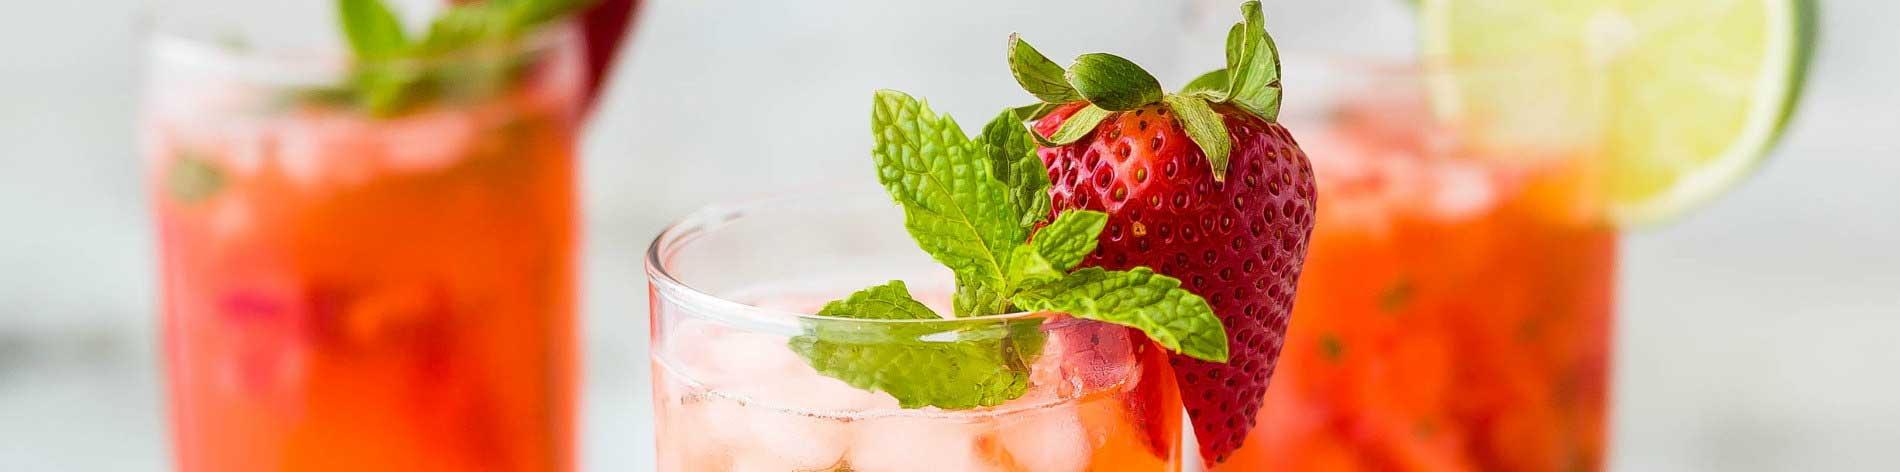 Only Gluten Free Recipes Banner